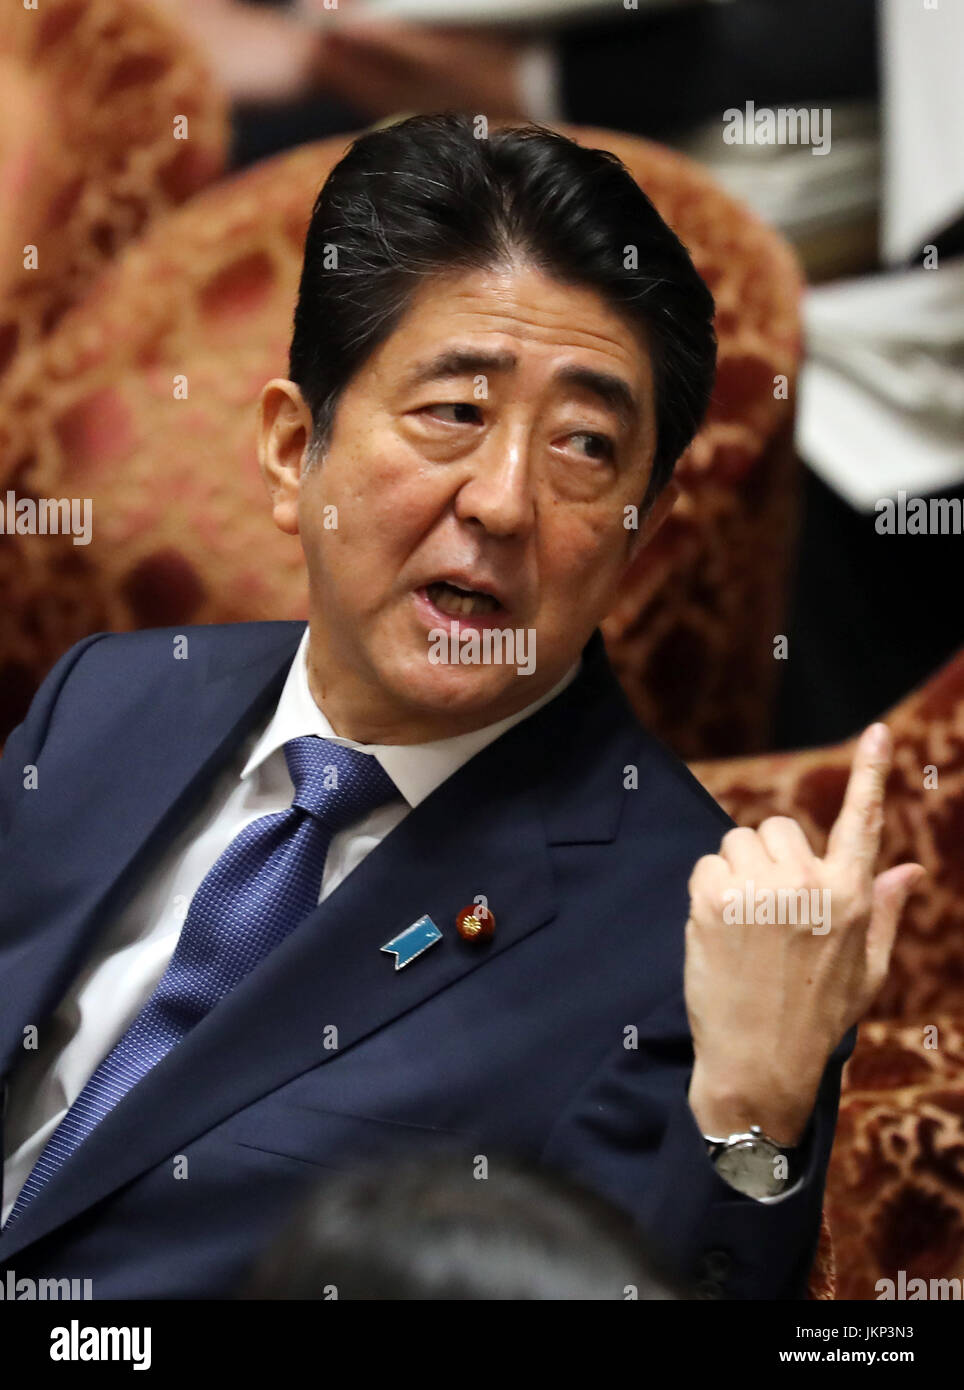 Tokyo, Japan. 24th July, 2017. Japanese Prime Minister Shinzo Abe reacts histo a question by an opposition lawmaker - Stock Image